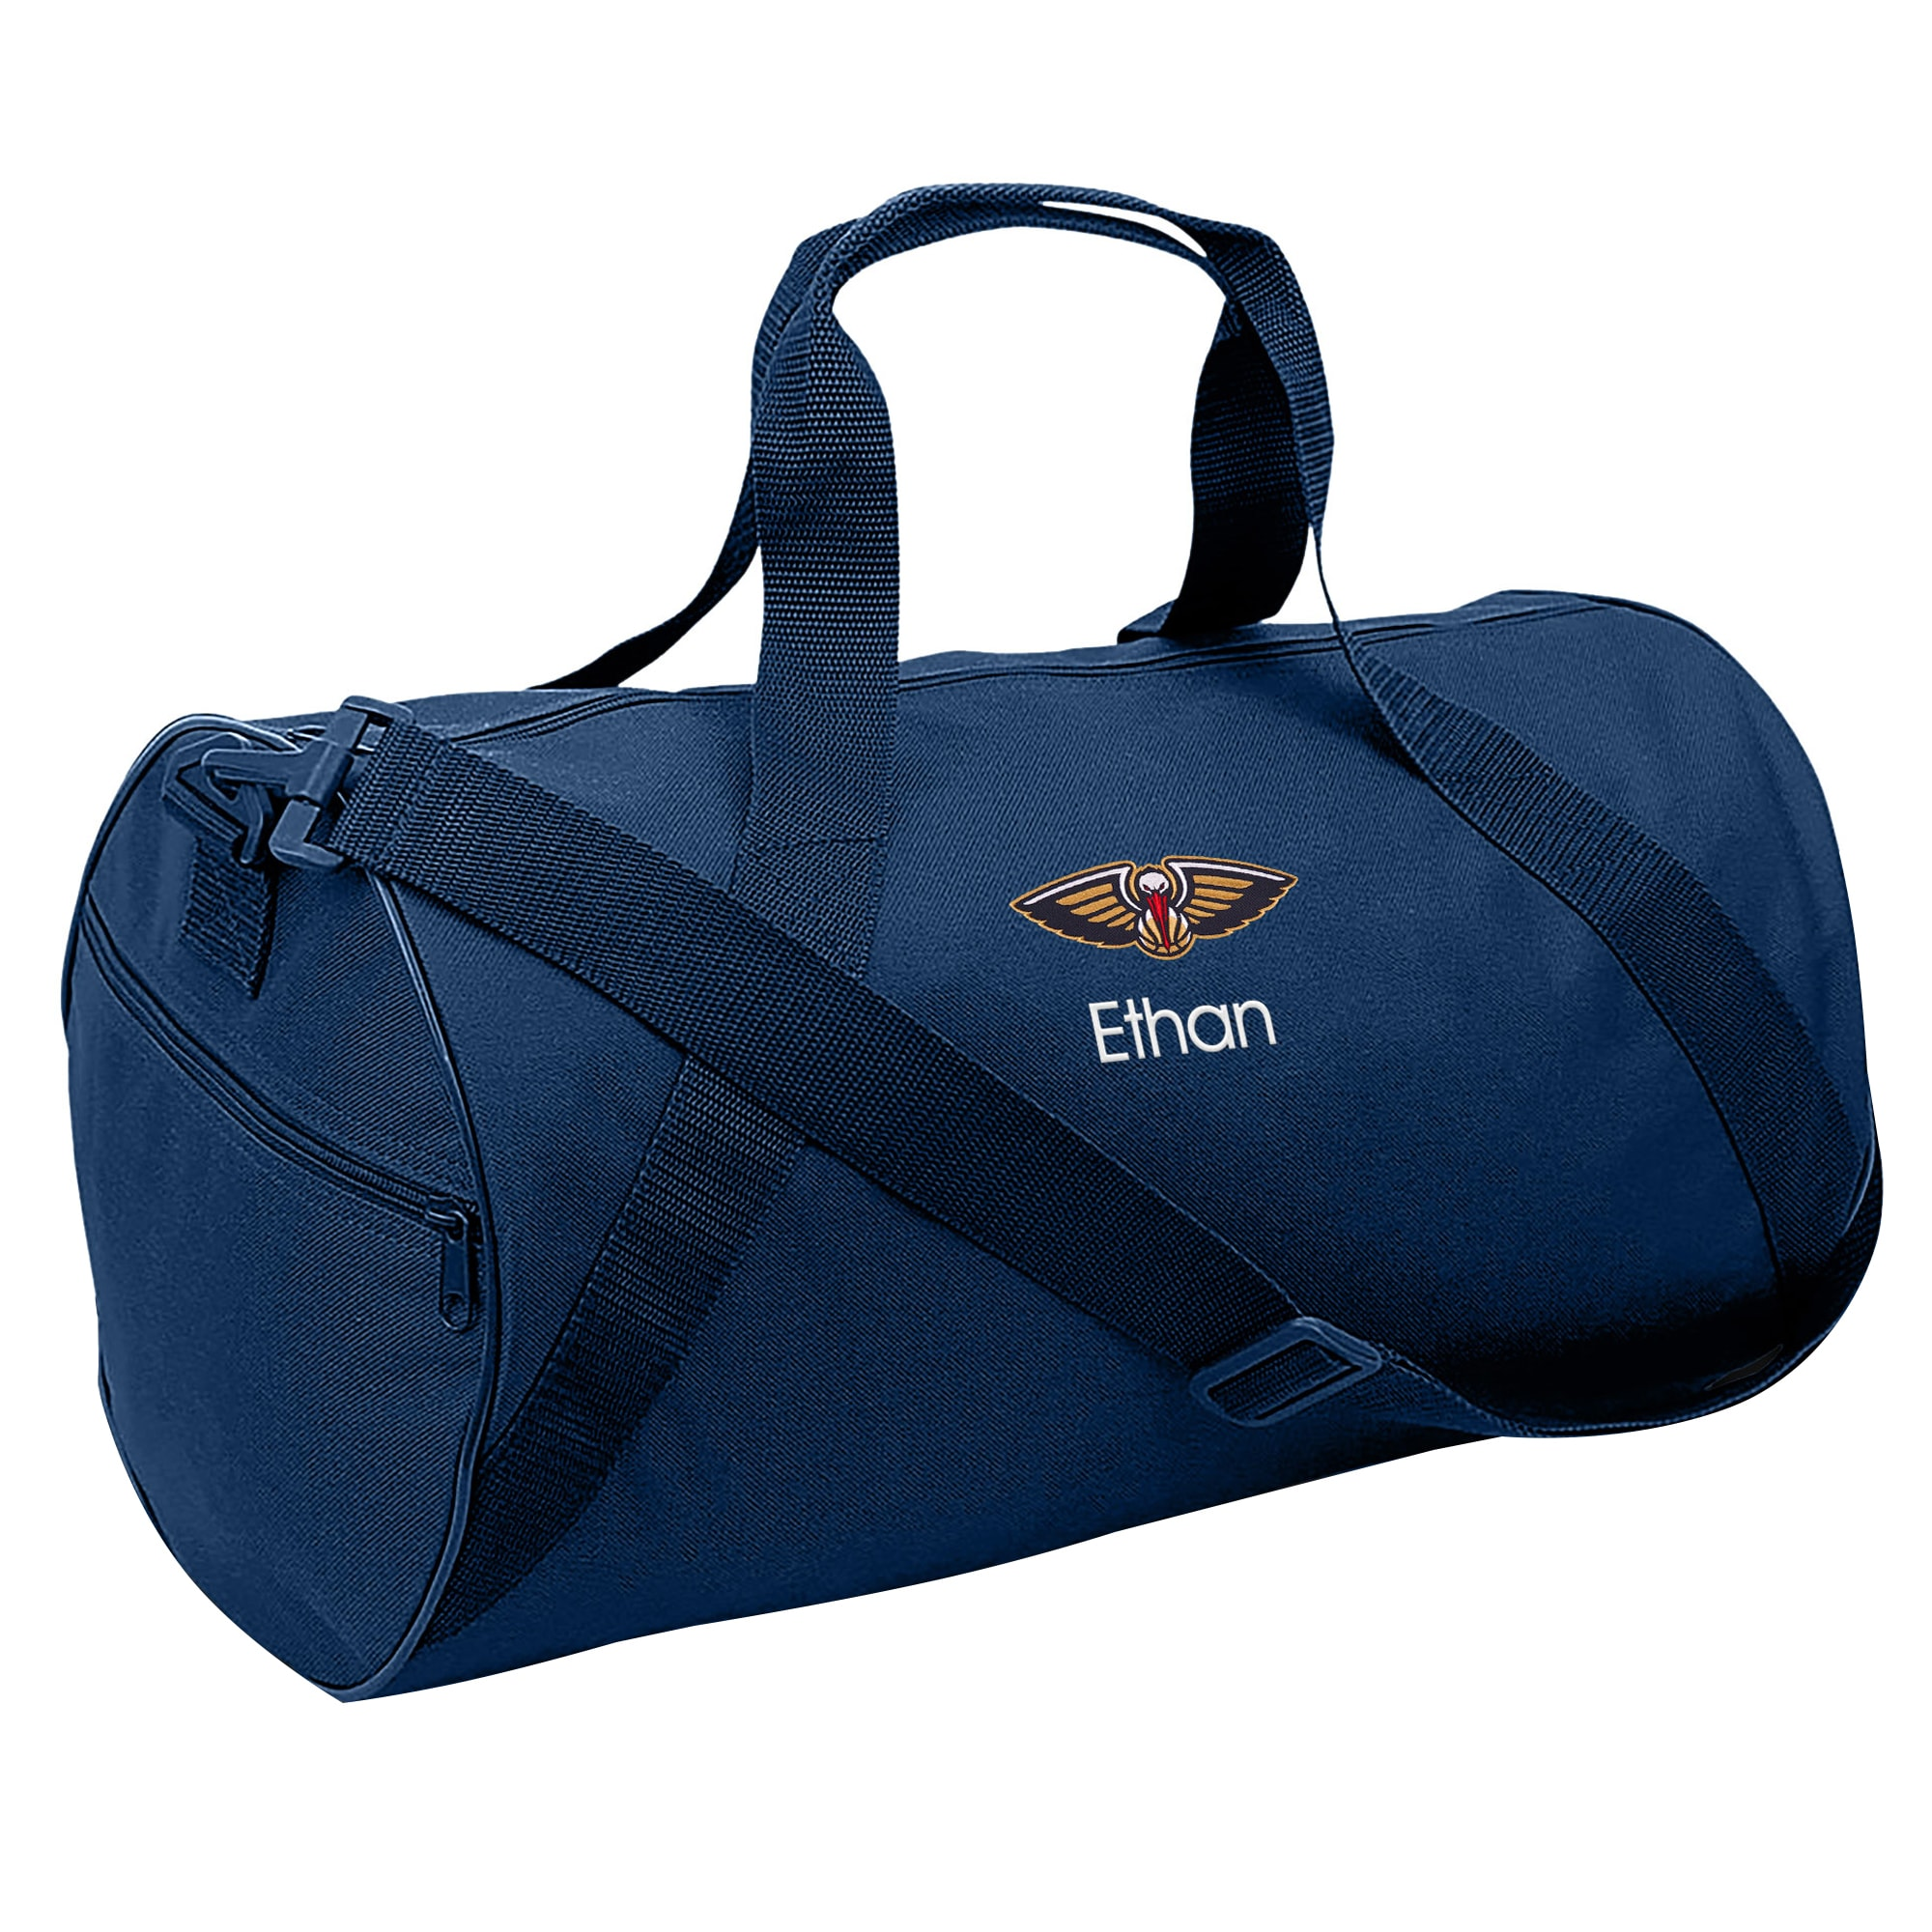 New Orleans Pelicans Youth Personalized Duffle Bag - Navy